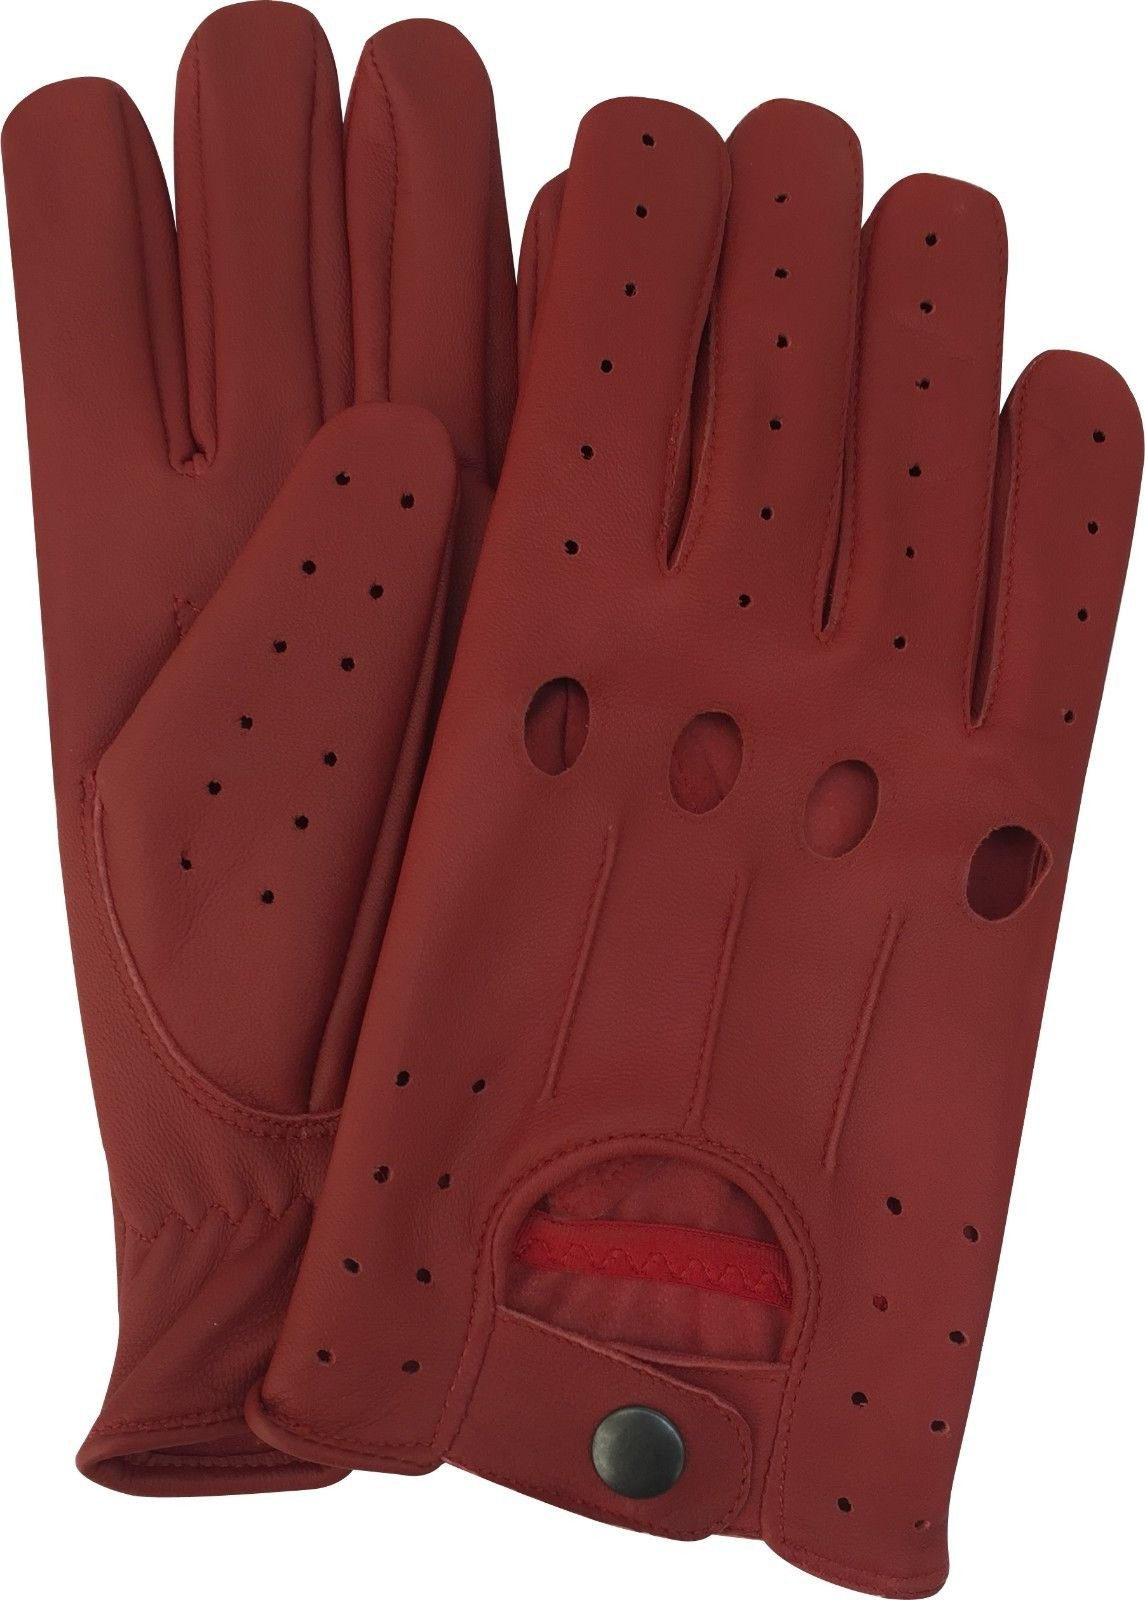 A K Leather Men's Unlined Lambskin Soft Leather Fashion Driving Gloves (Small, Red)